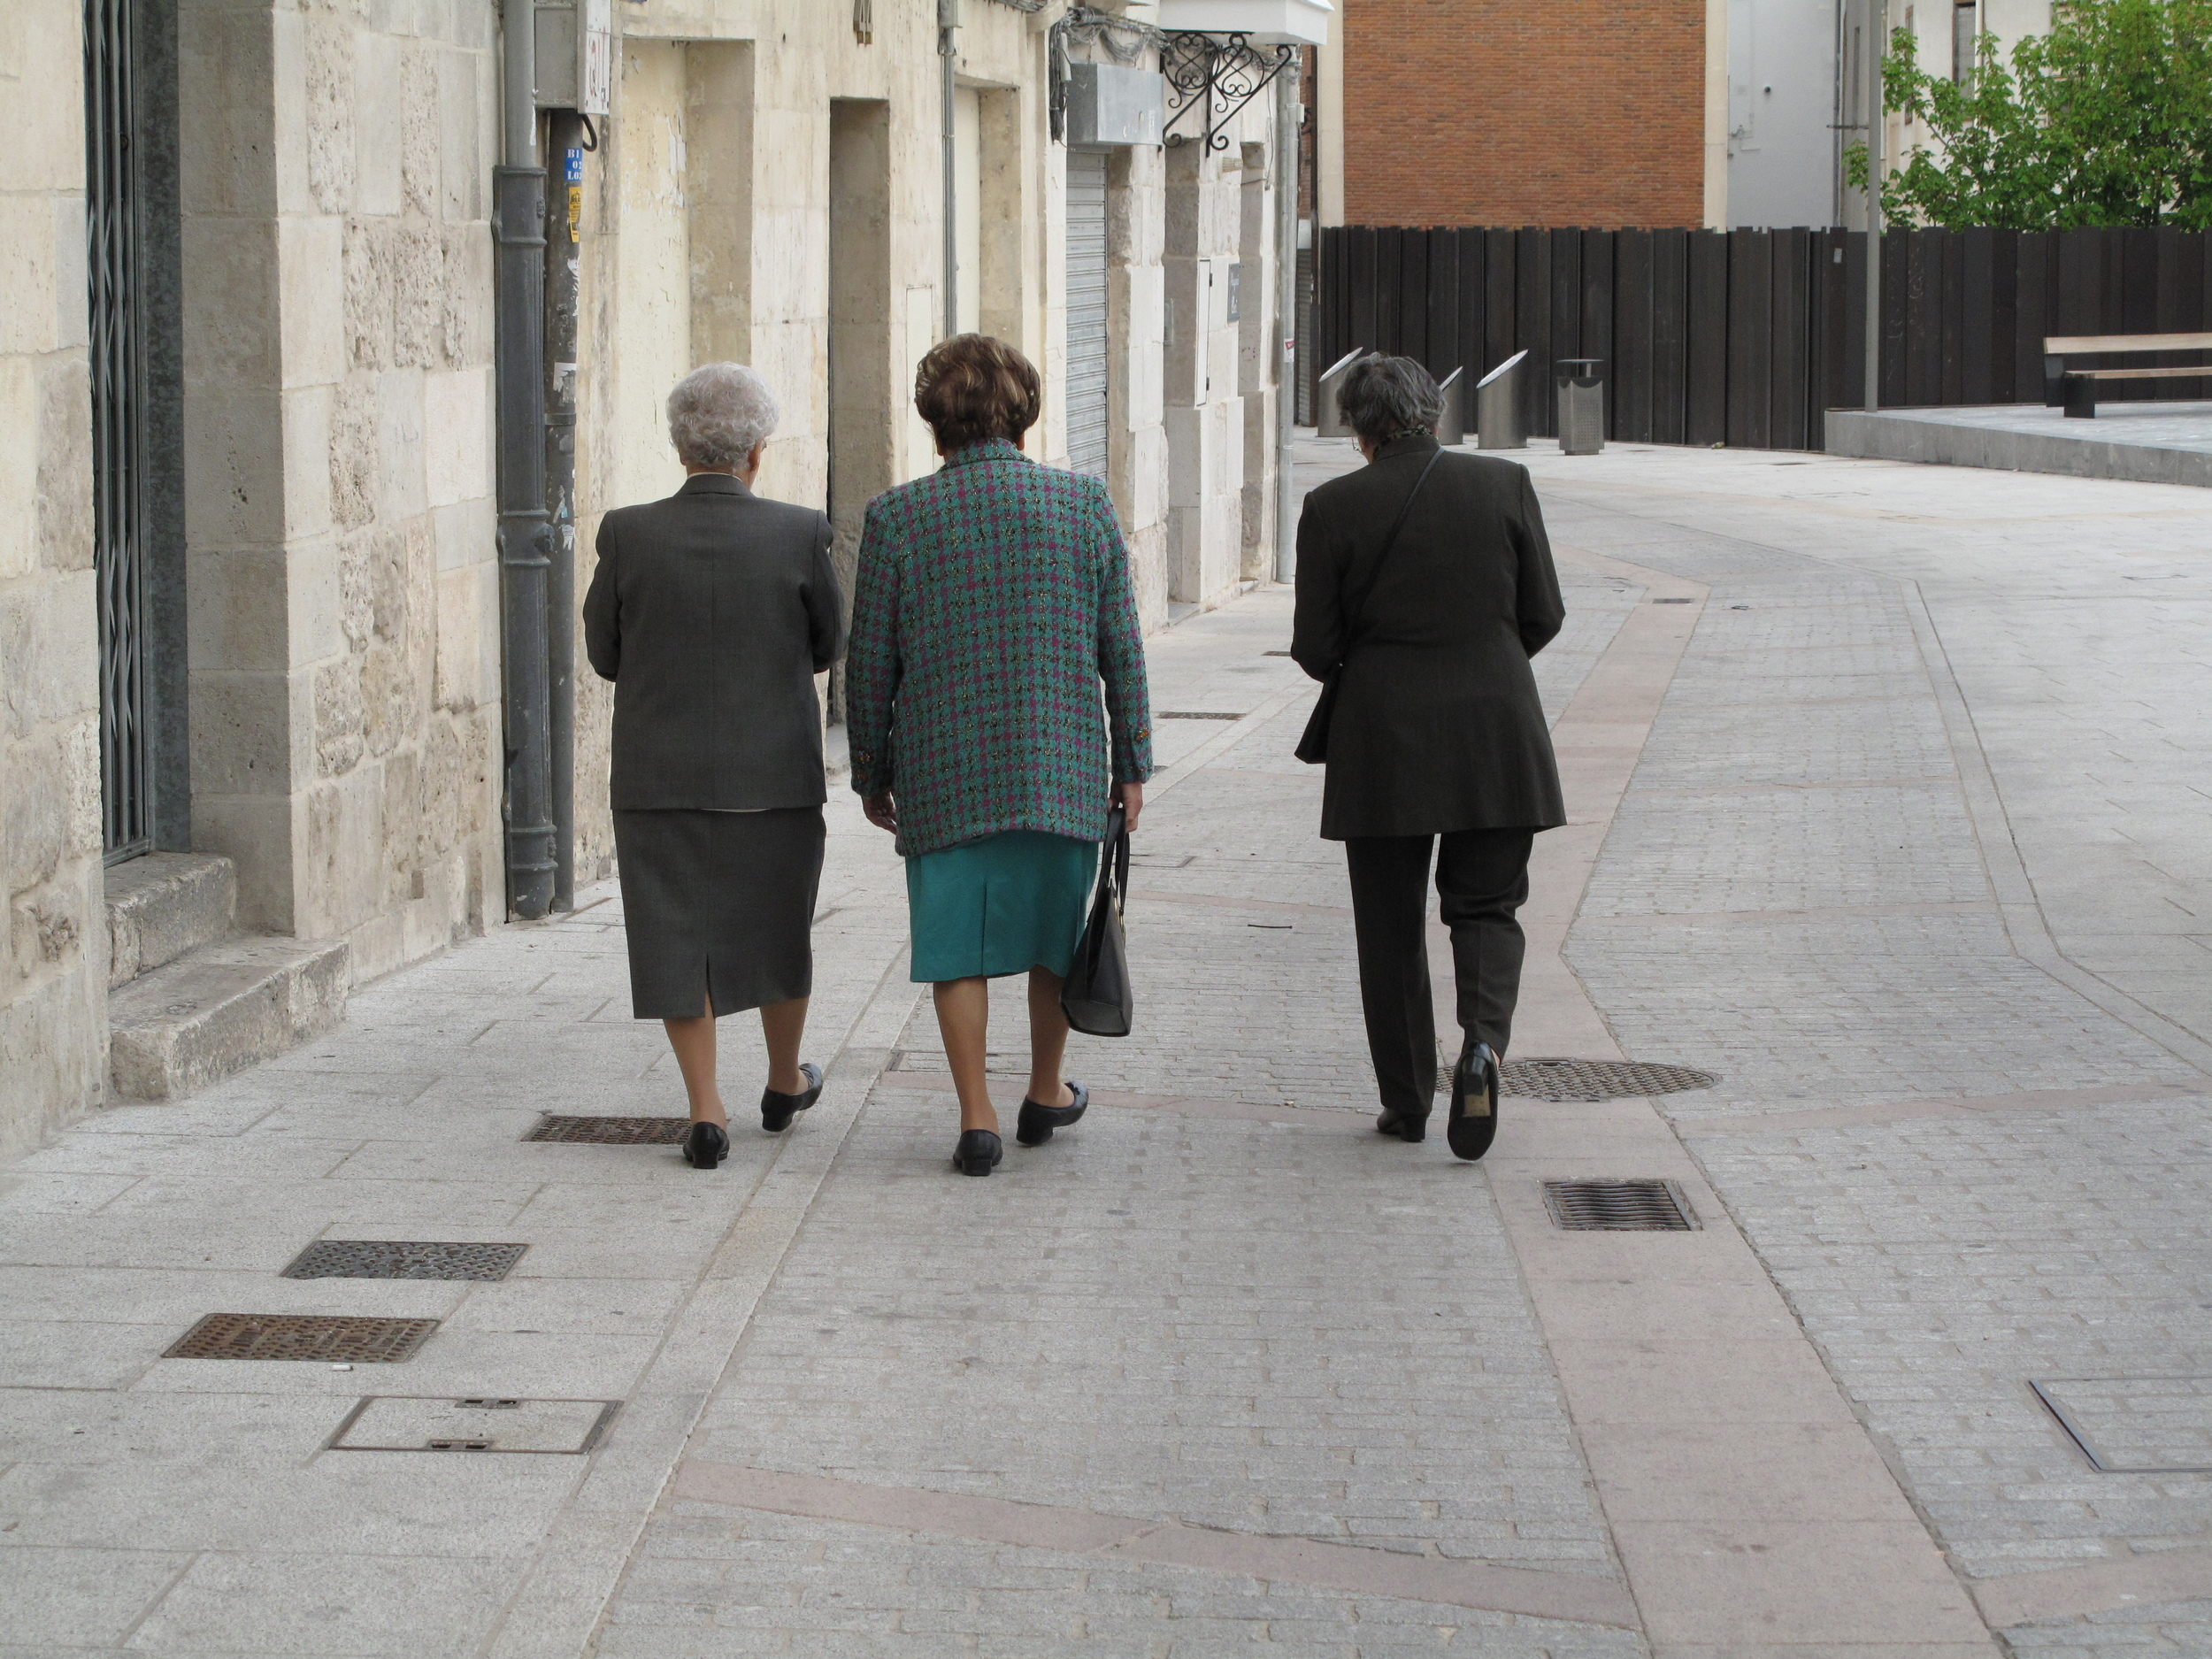 """Today was a """"zero"""" day where I didn't travel. I hung out in Burgos and saw these lovely ladies wandering down the street. For some reason, they reminded me of my Italian great-grandmother."""